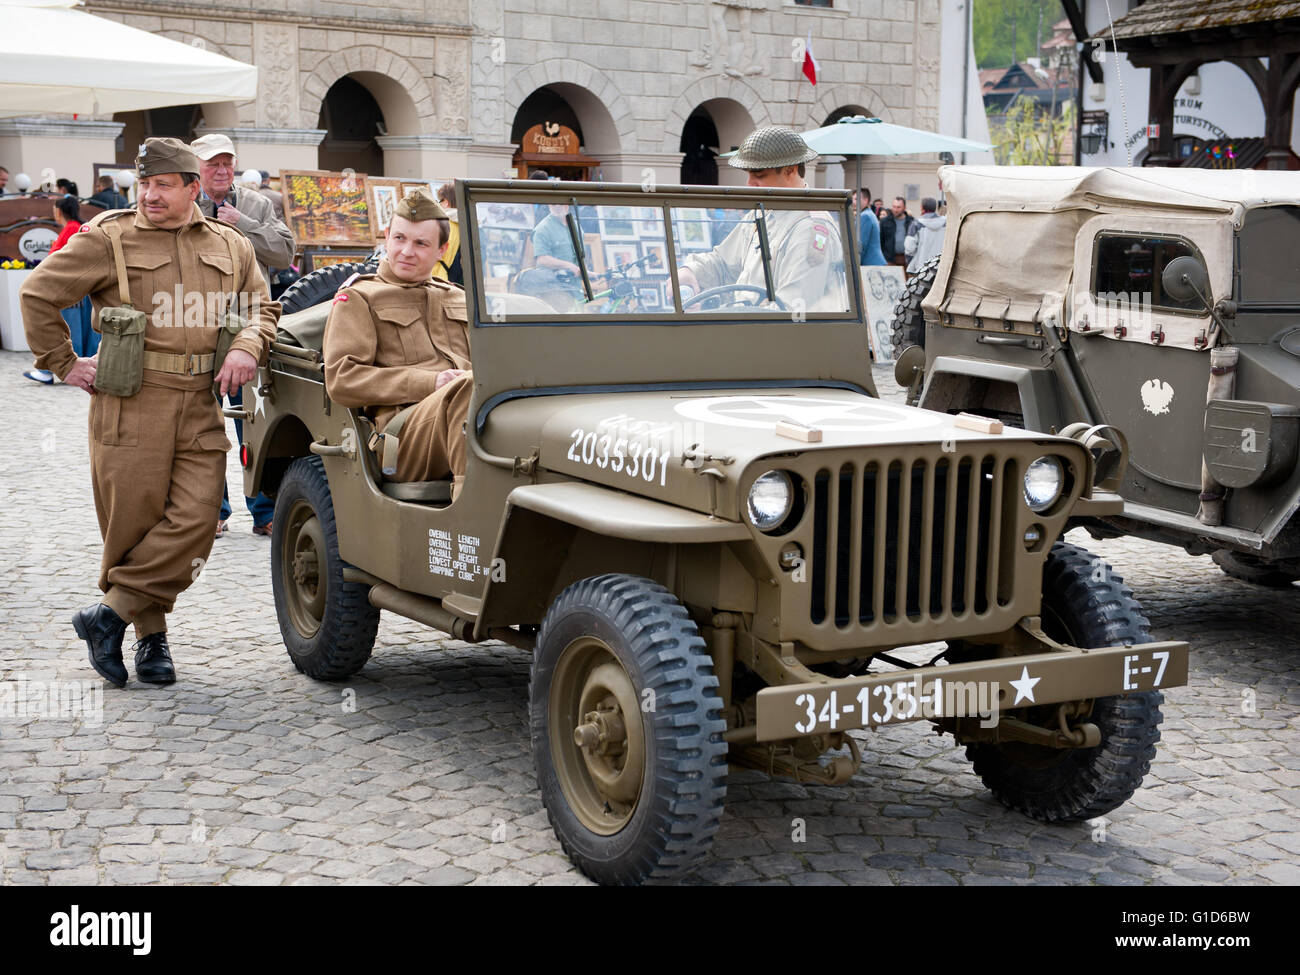 Soldiers reenactors at Rally VI military vehicles from World War II in Kazimierz Dolny, Poland, antique army Willys - Stock Image